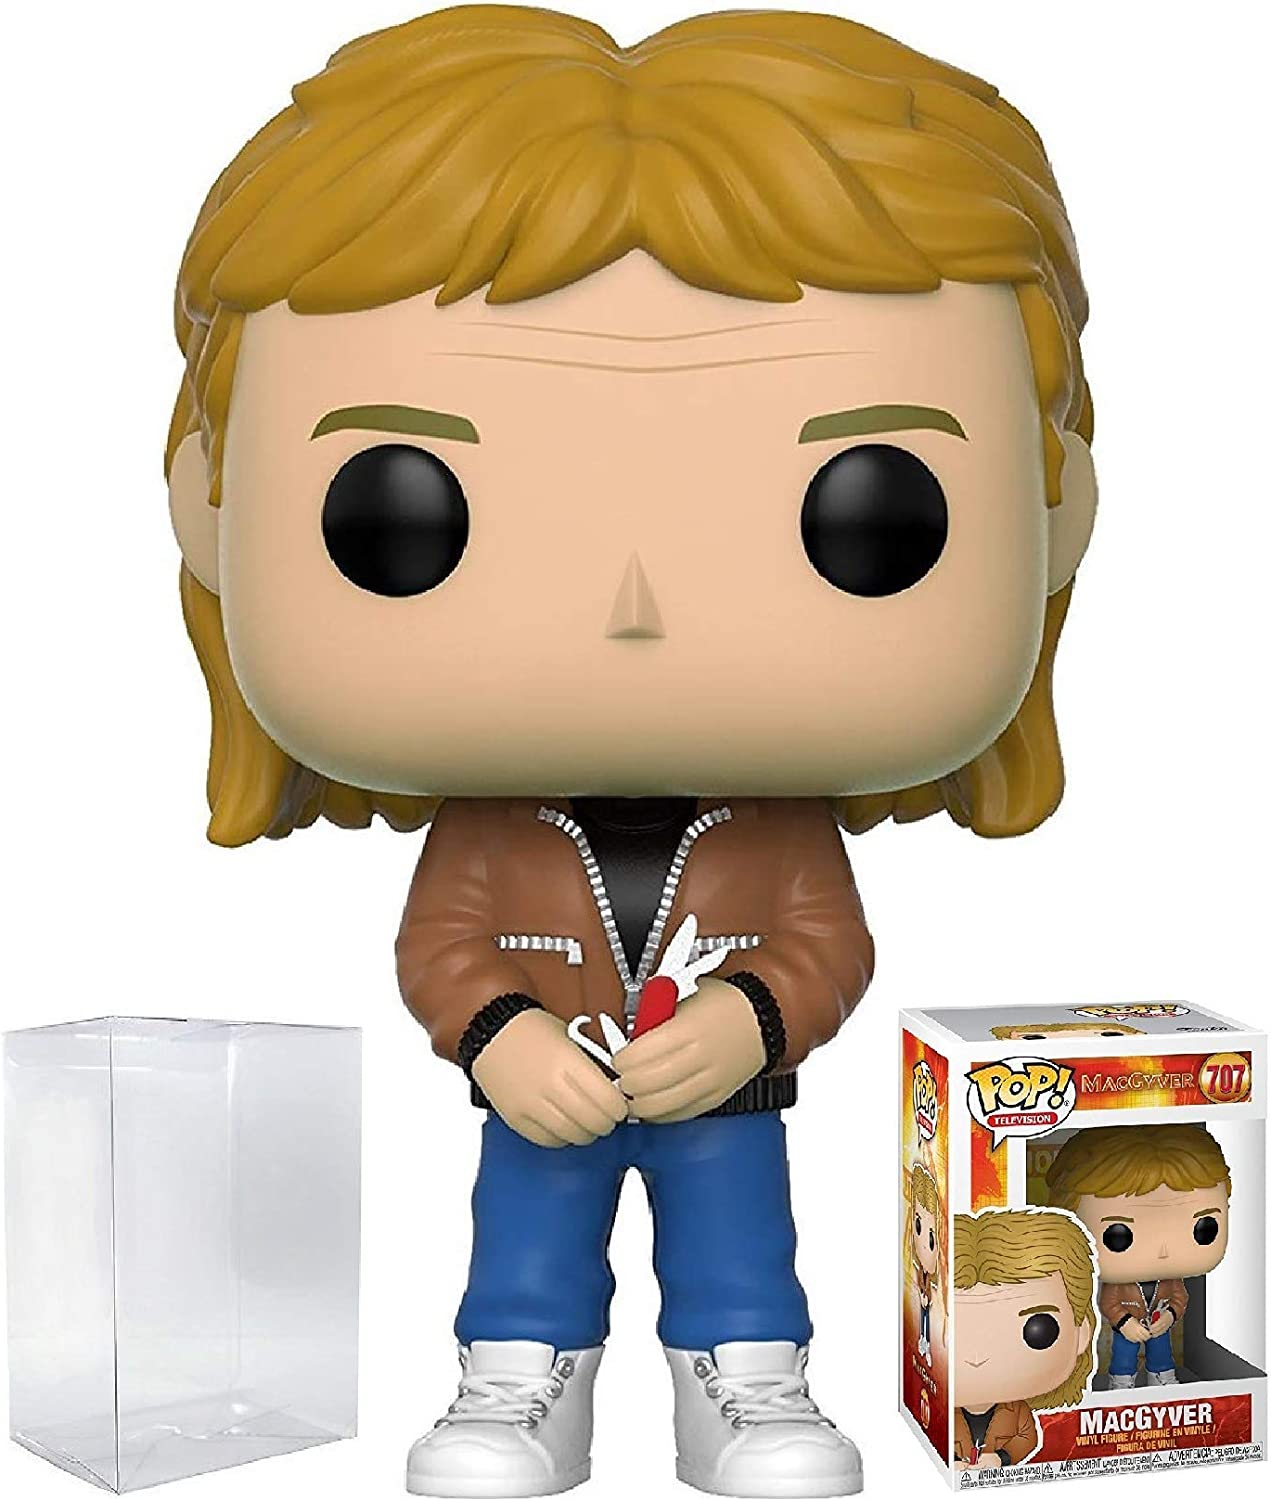 Funko Pop! TV: MacGyver - MacGyver Vinyl Figure (Bundled with Pop Box Protector Case)